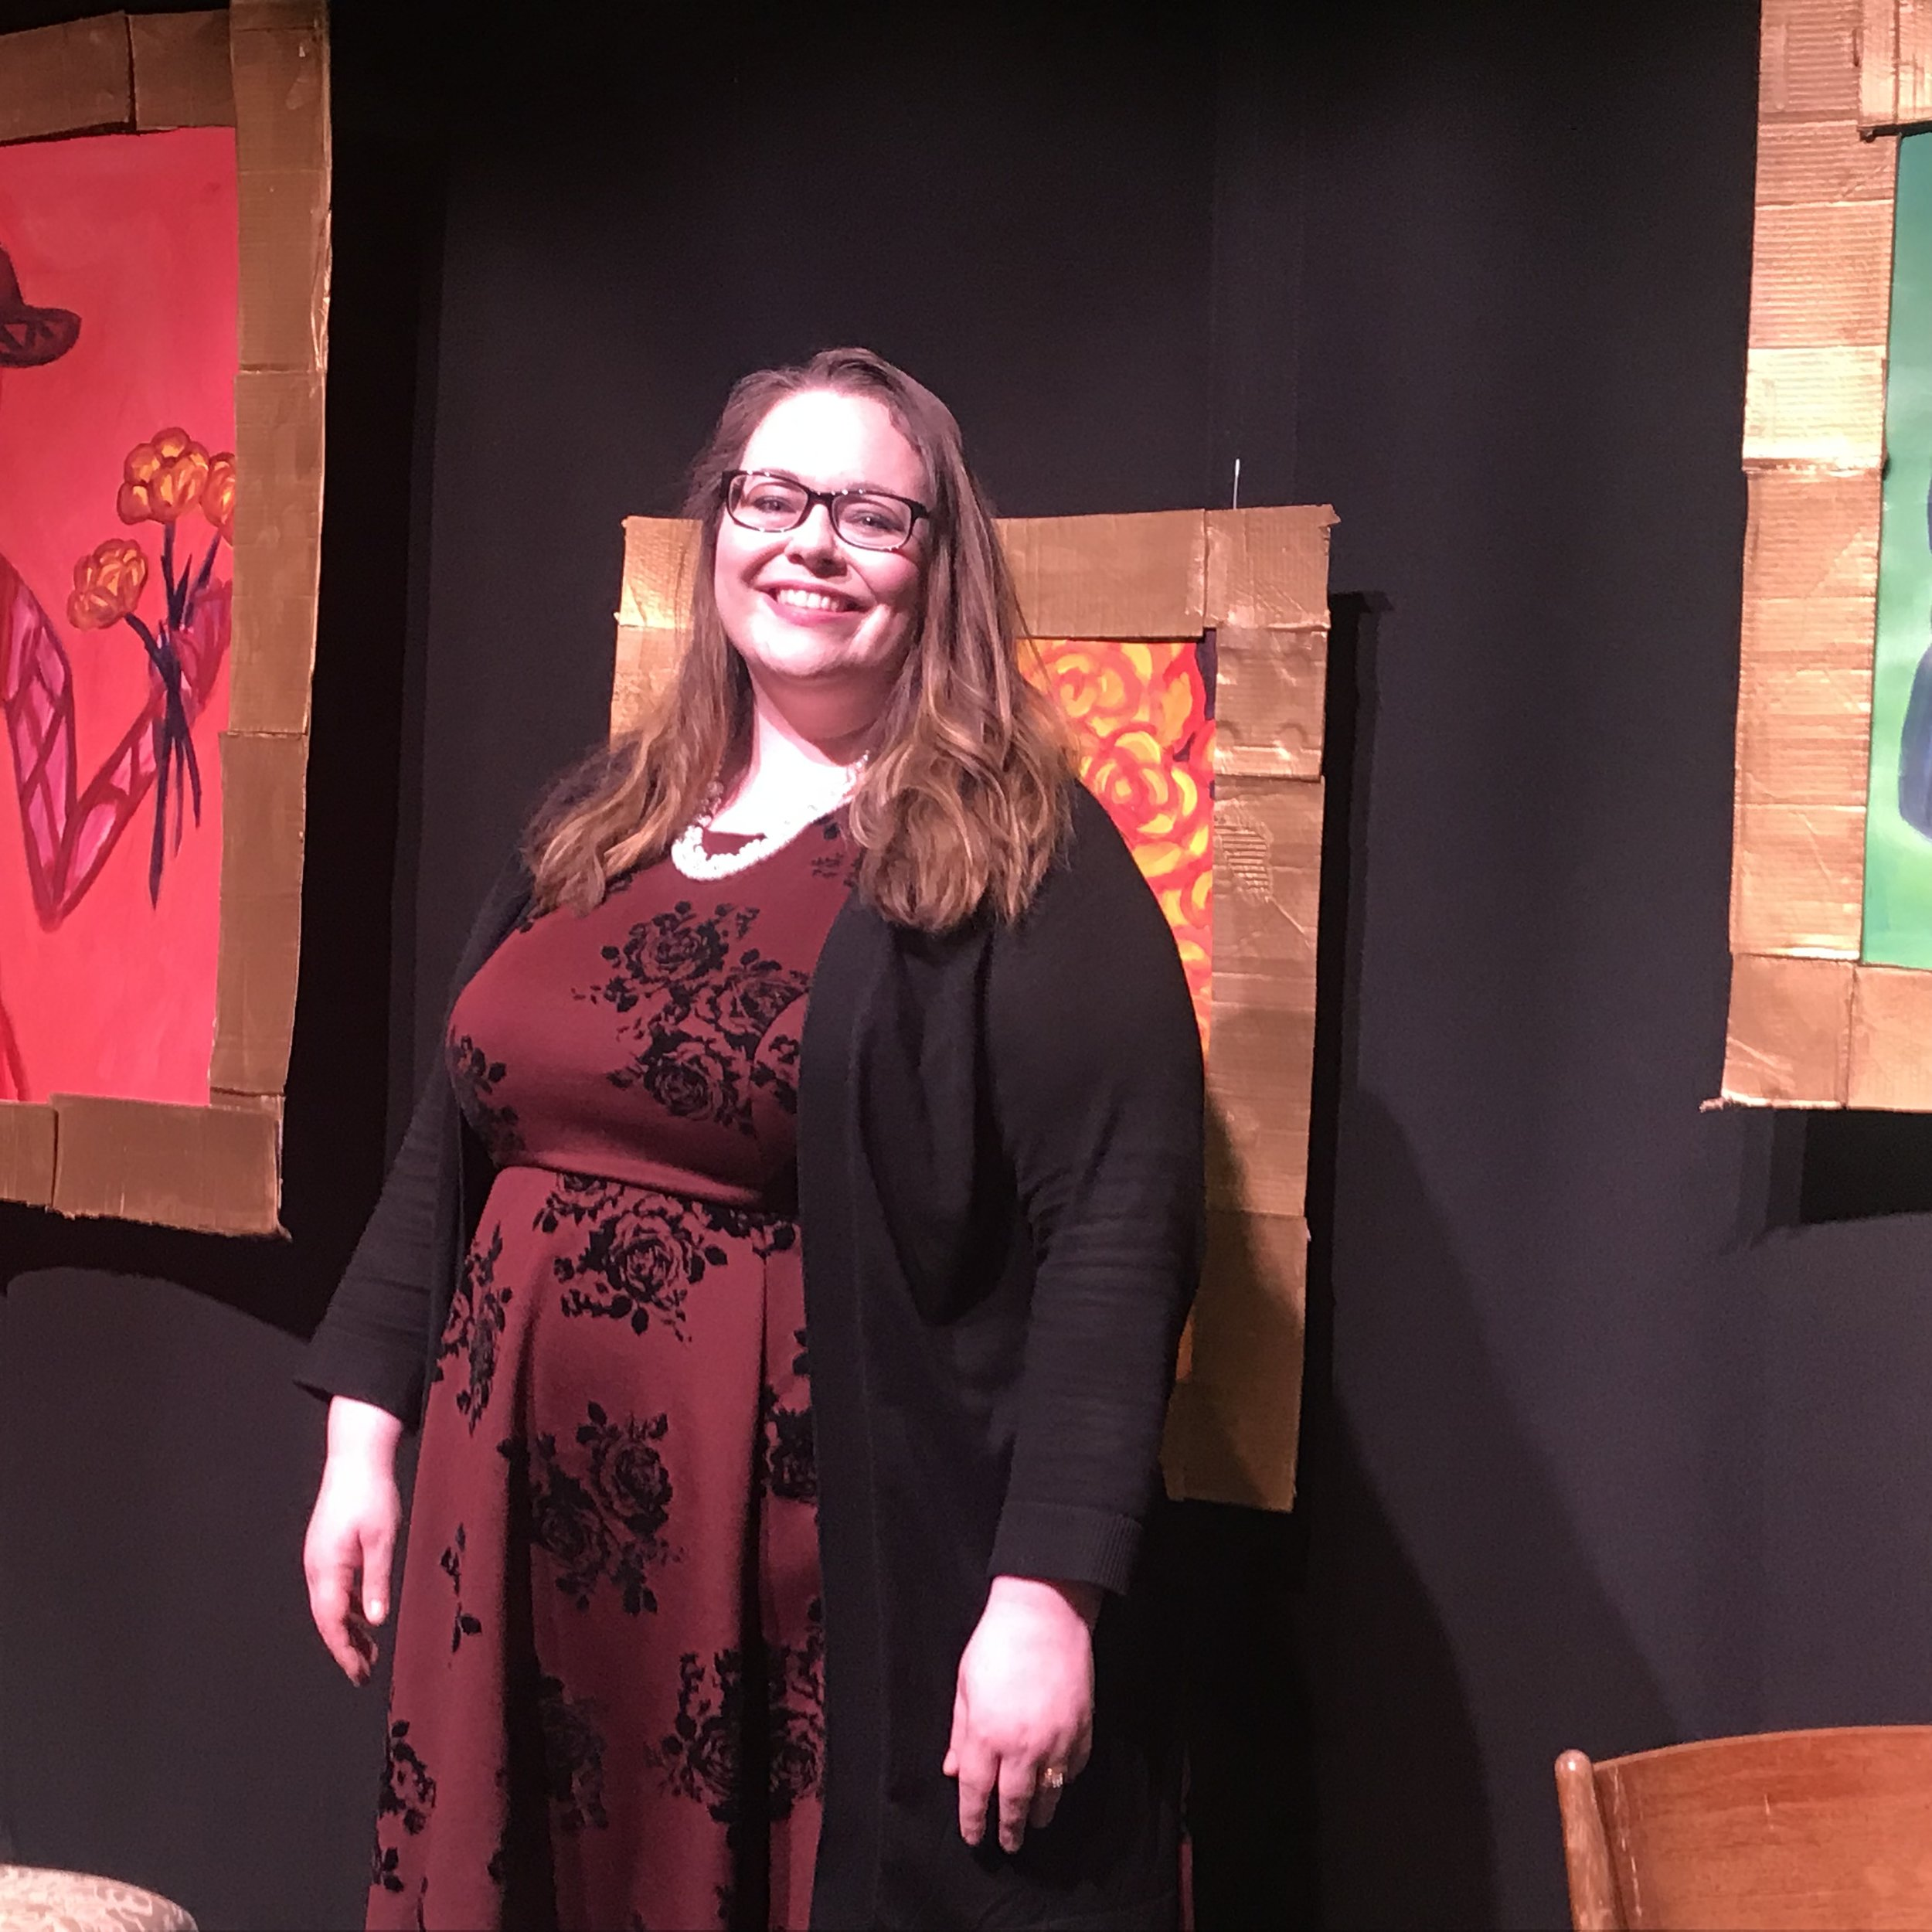 """On the set of, """"The Clever Artifice of Harriet and Margaret"""" by Leanna Kirchoff, with Opera del West in Natick, MA."""